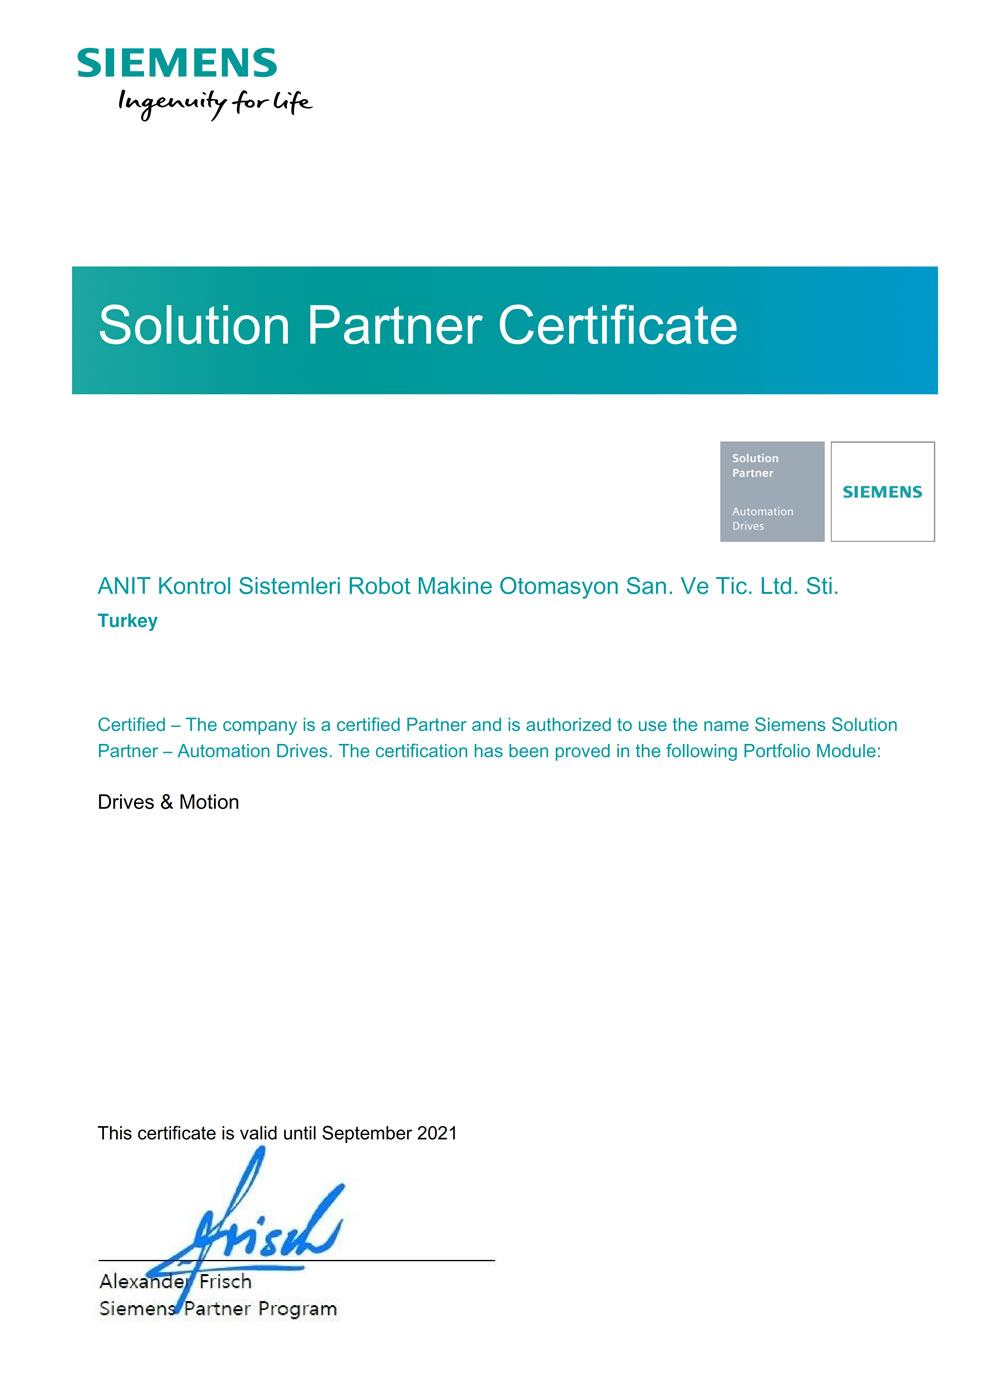 SIEMENS Partner - Drives & Motion